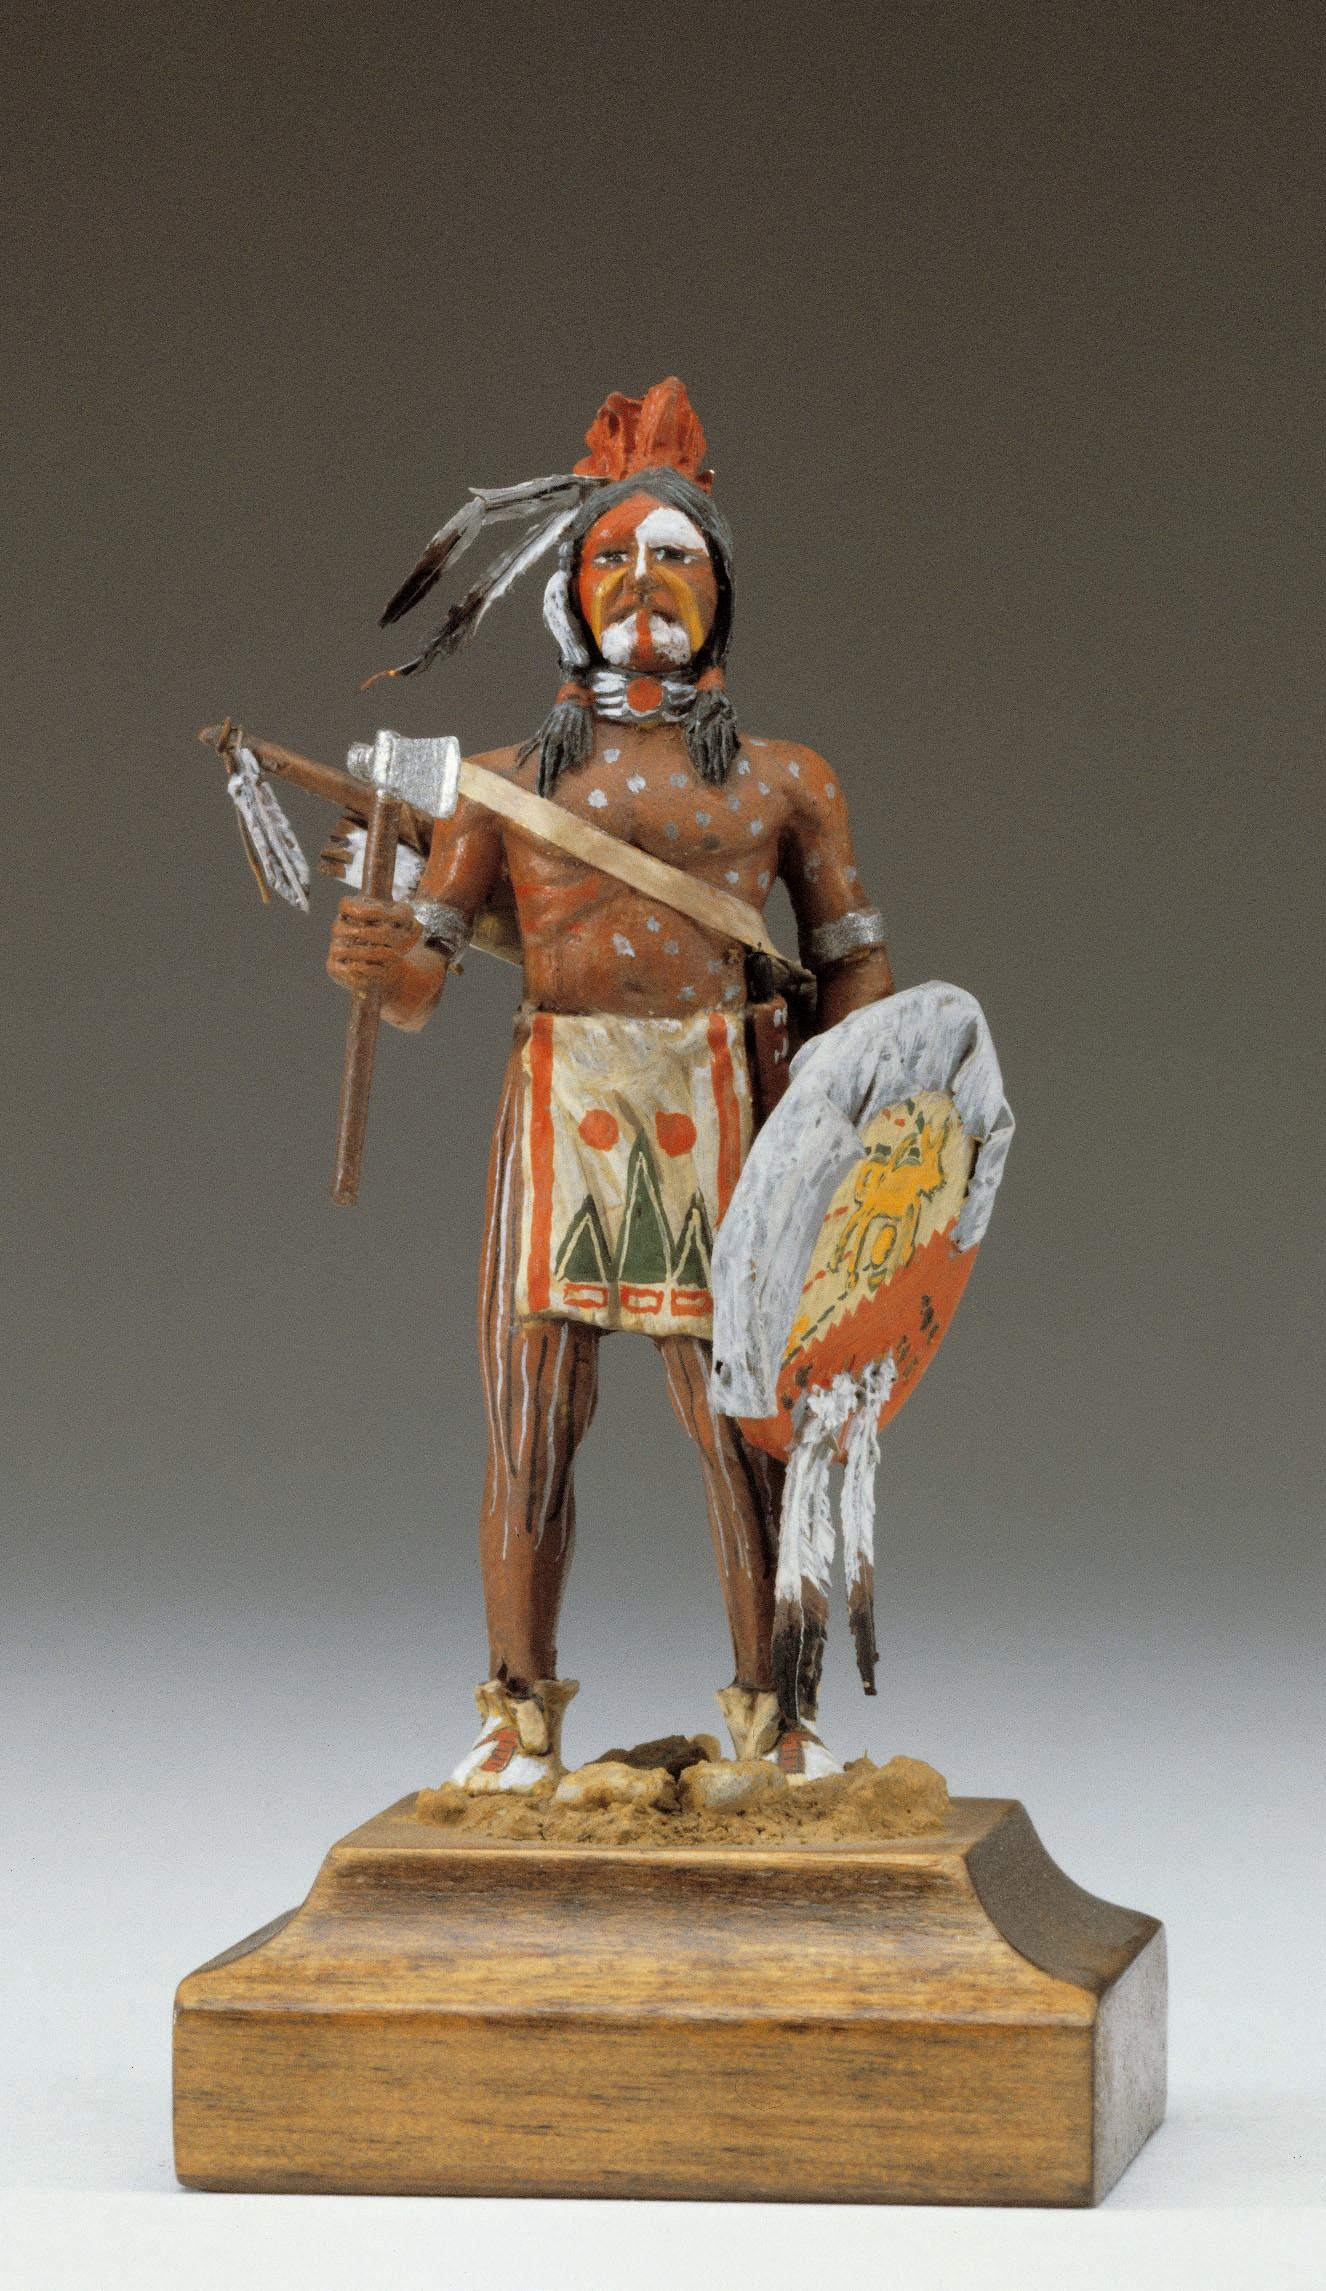 Cheyenne Warrior Figurine, XIX Century (Amati)